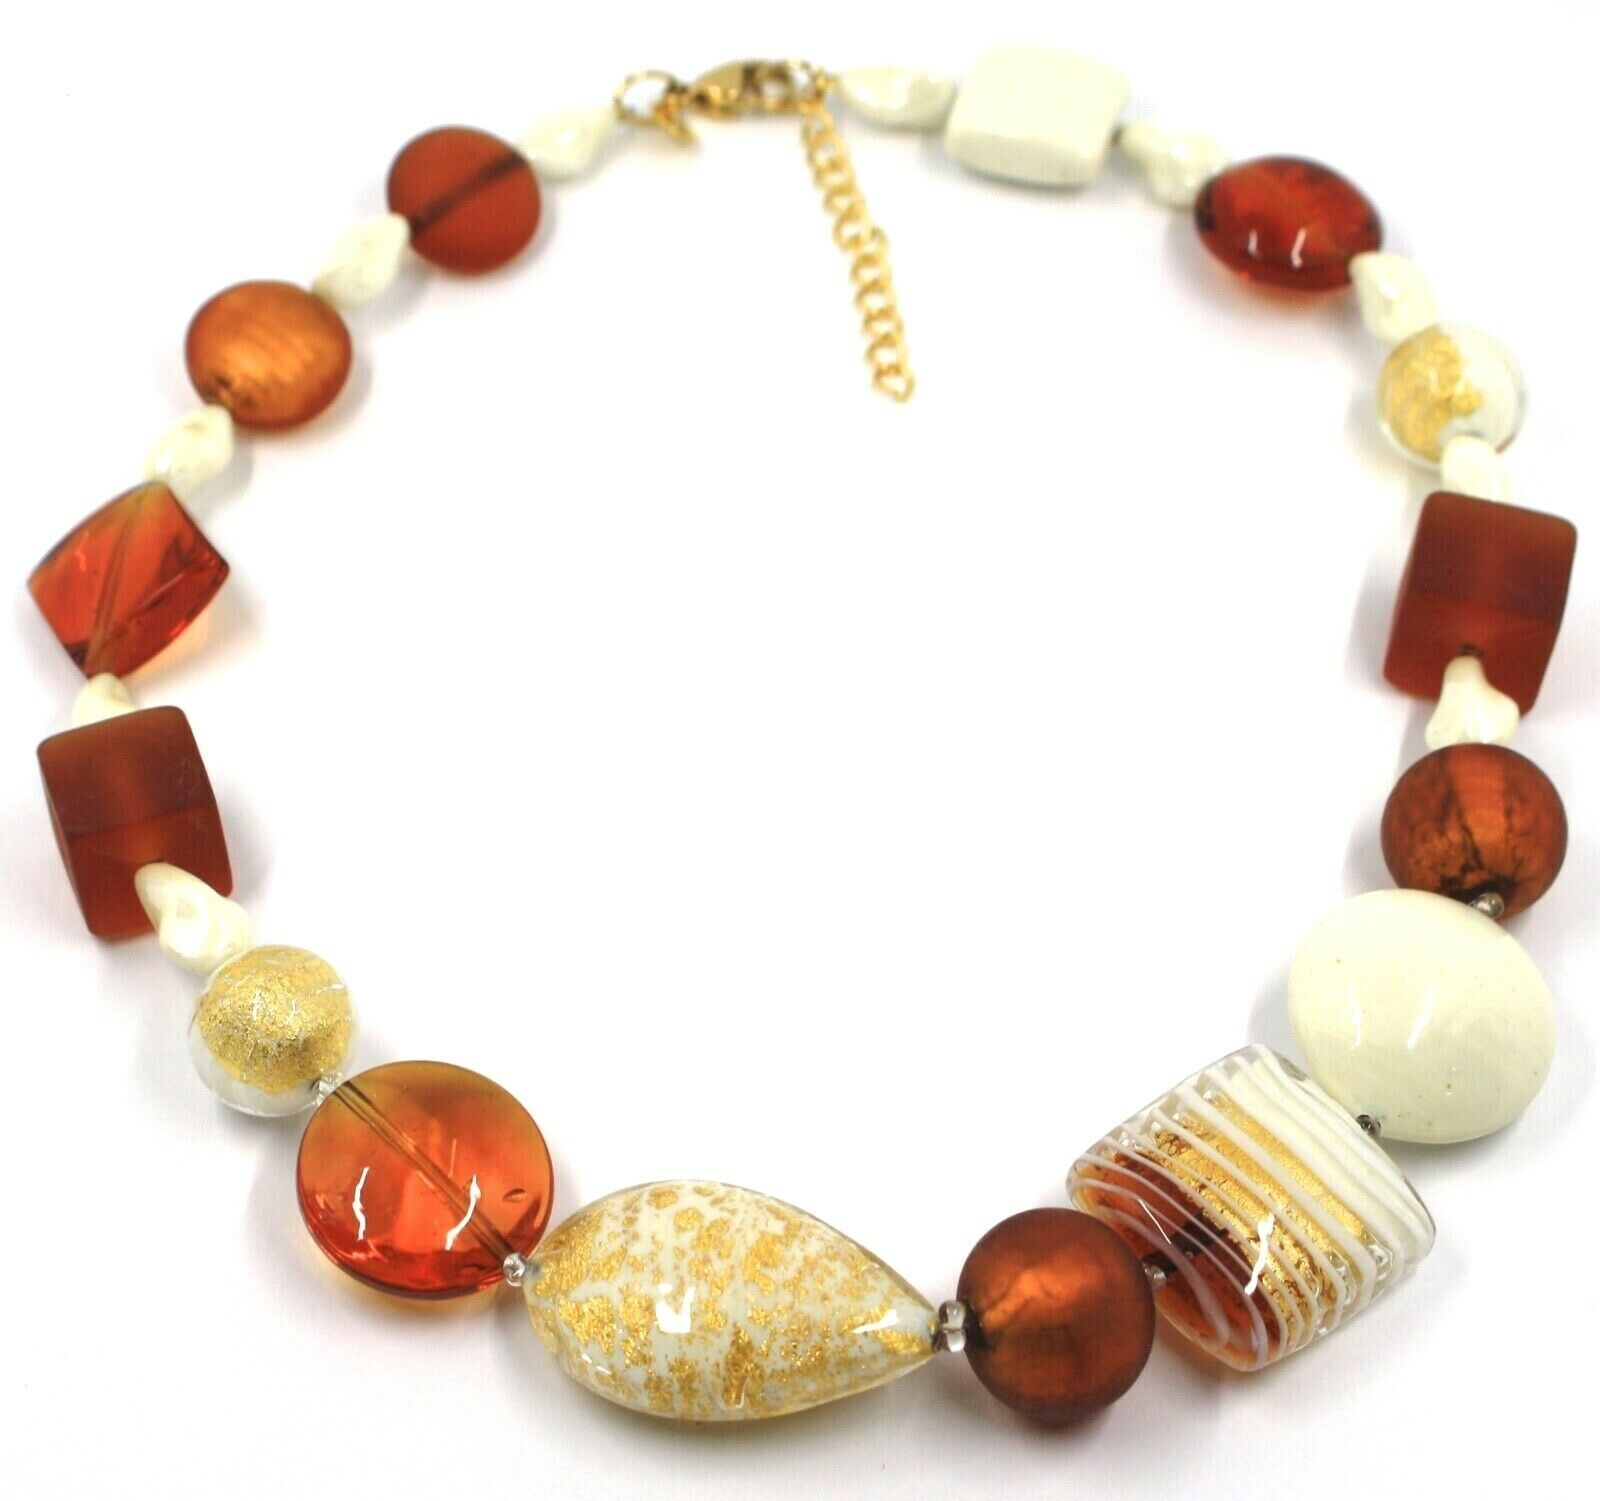 NECKLACE ORANGE WHITE SPHERE SQUARE DROP MURANO GLASS GOLD LEAF SPIRAL ITALY